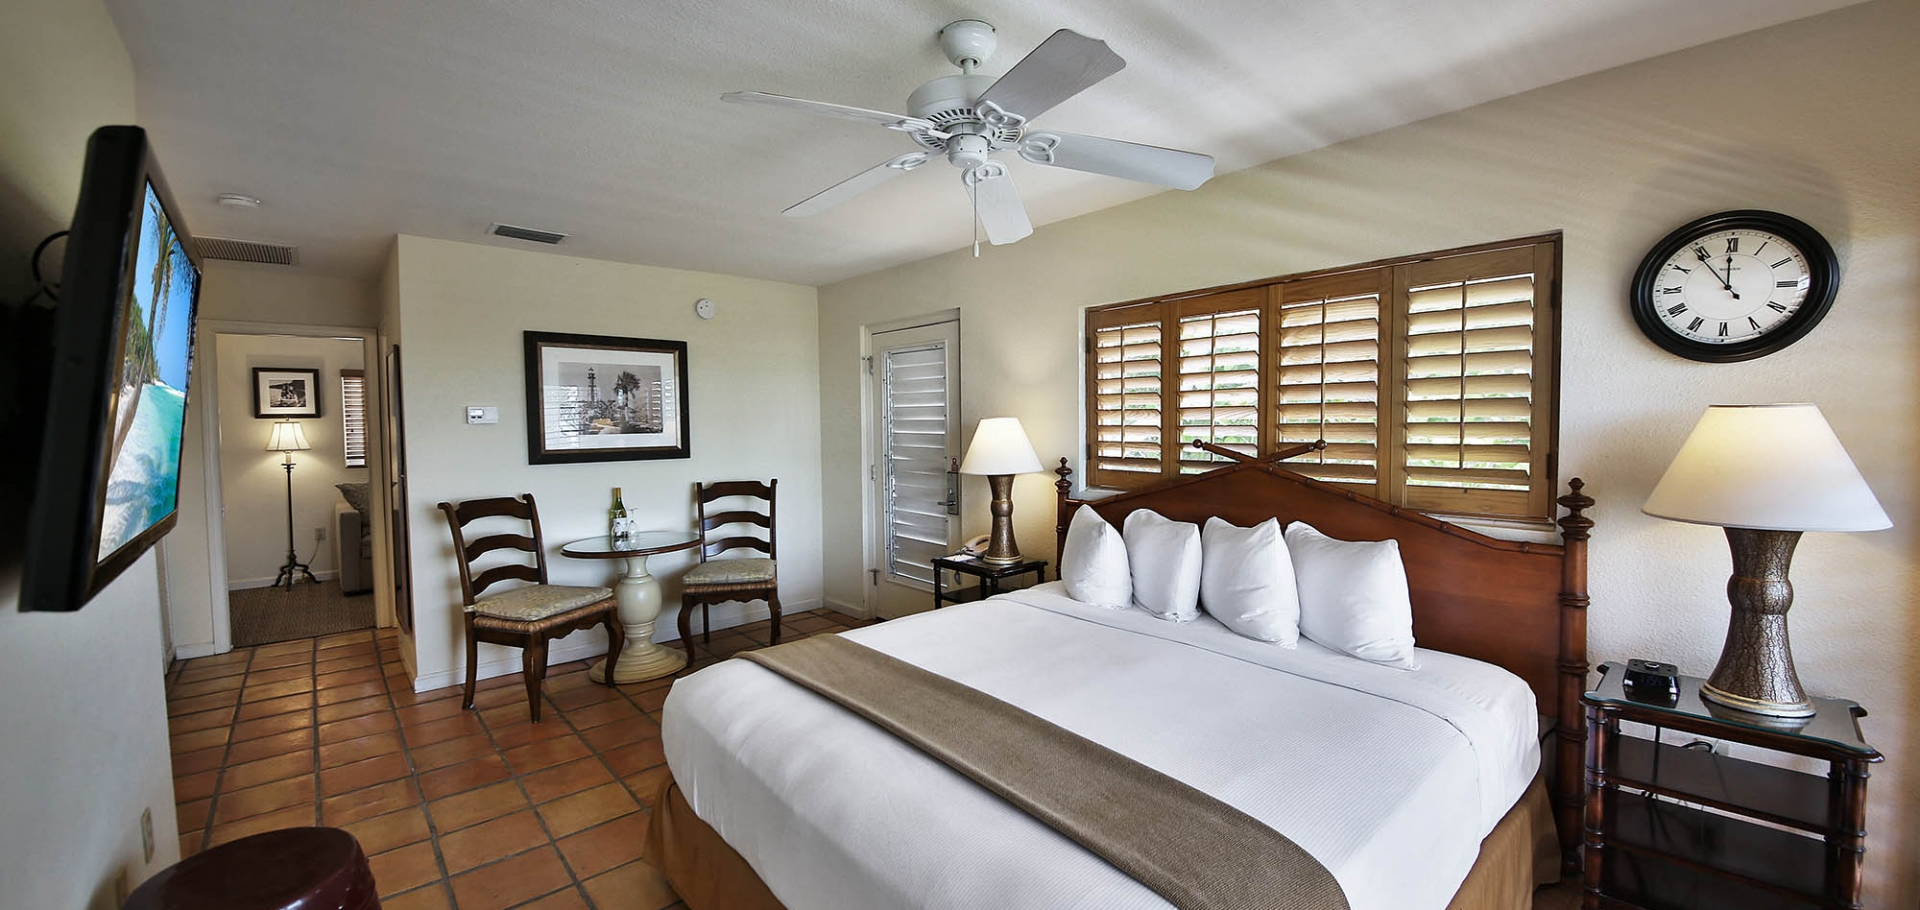 Sanibel Song of the Sea bedroom